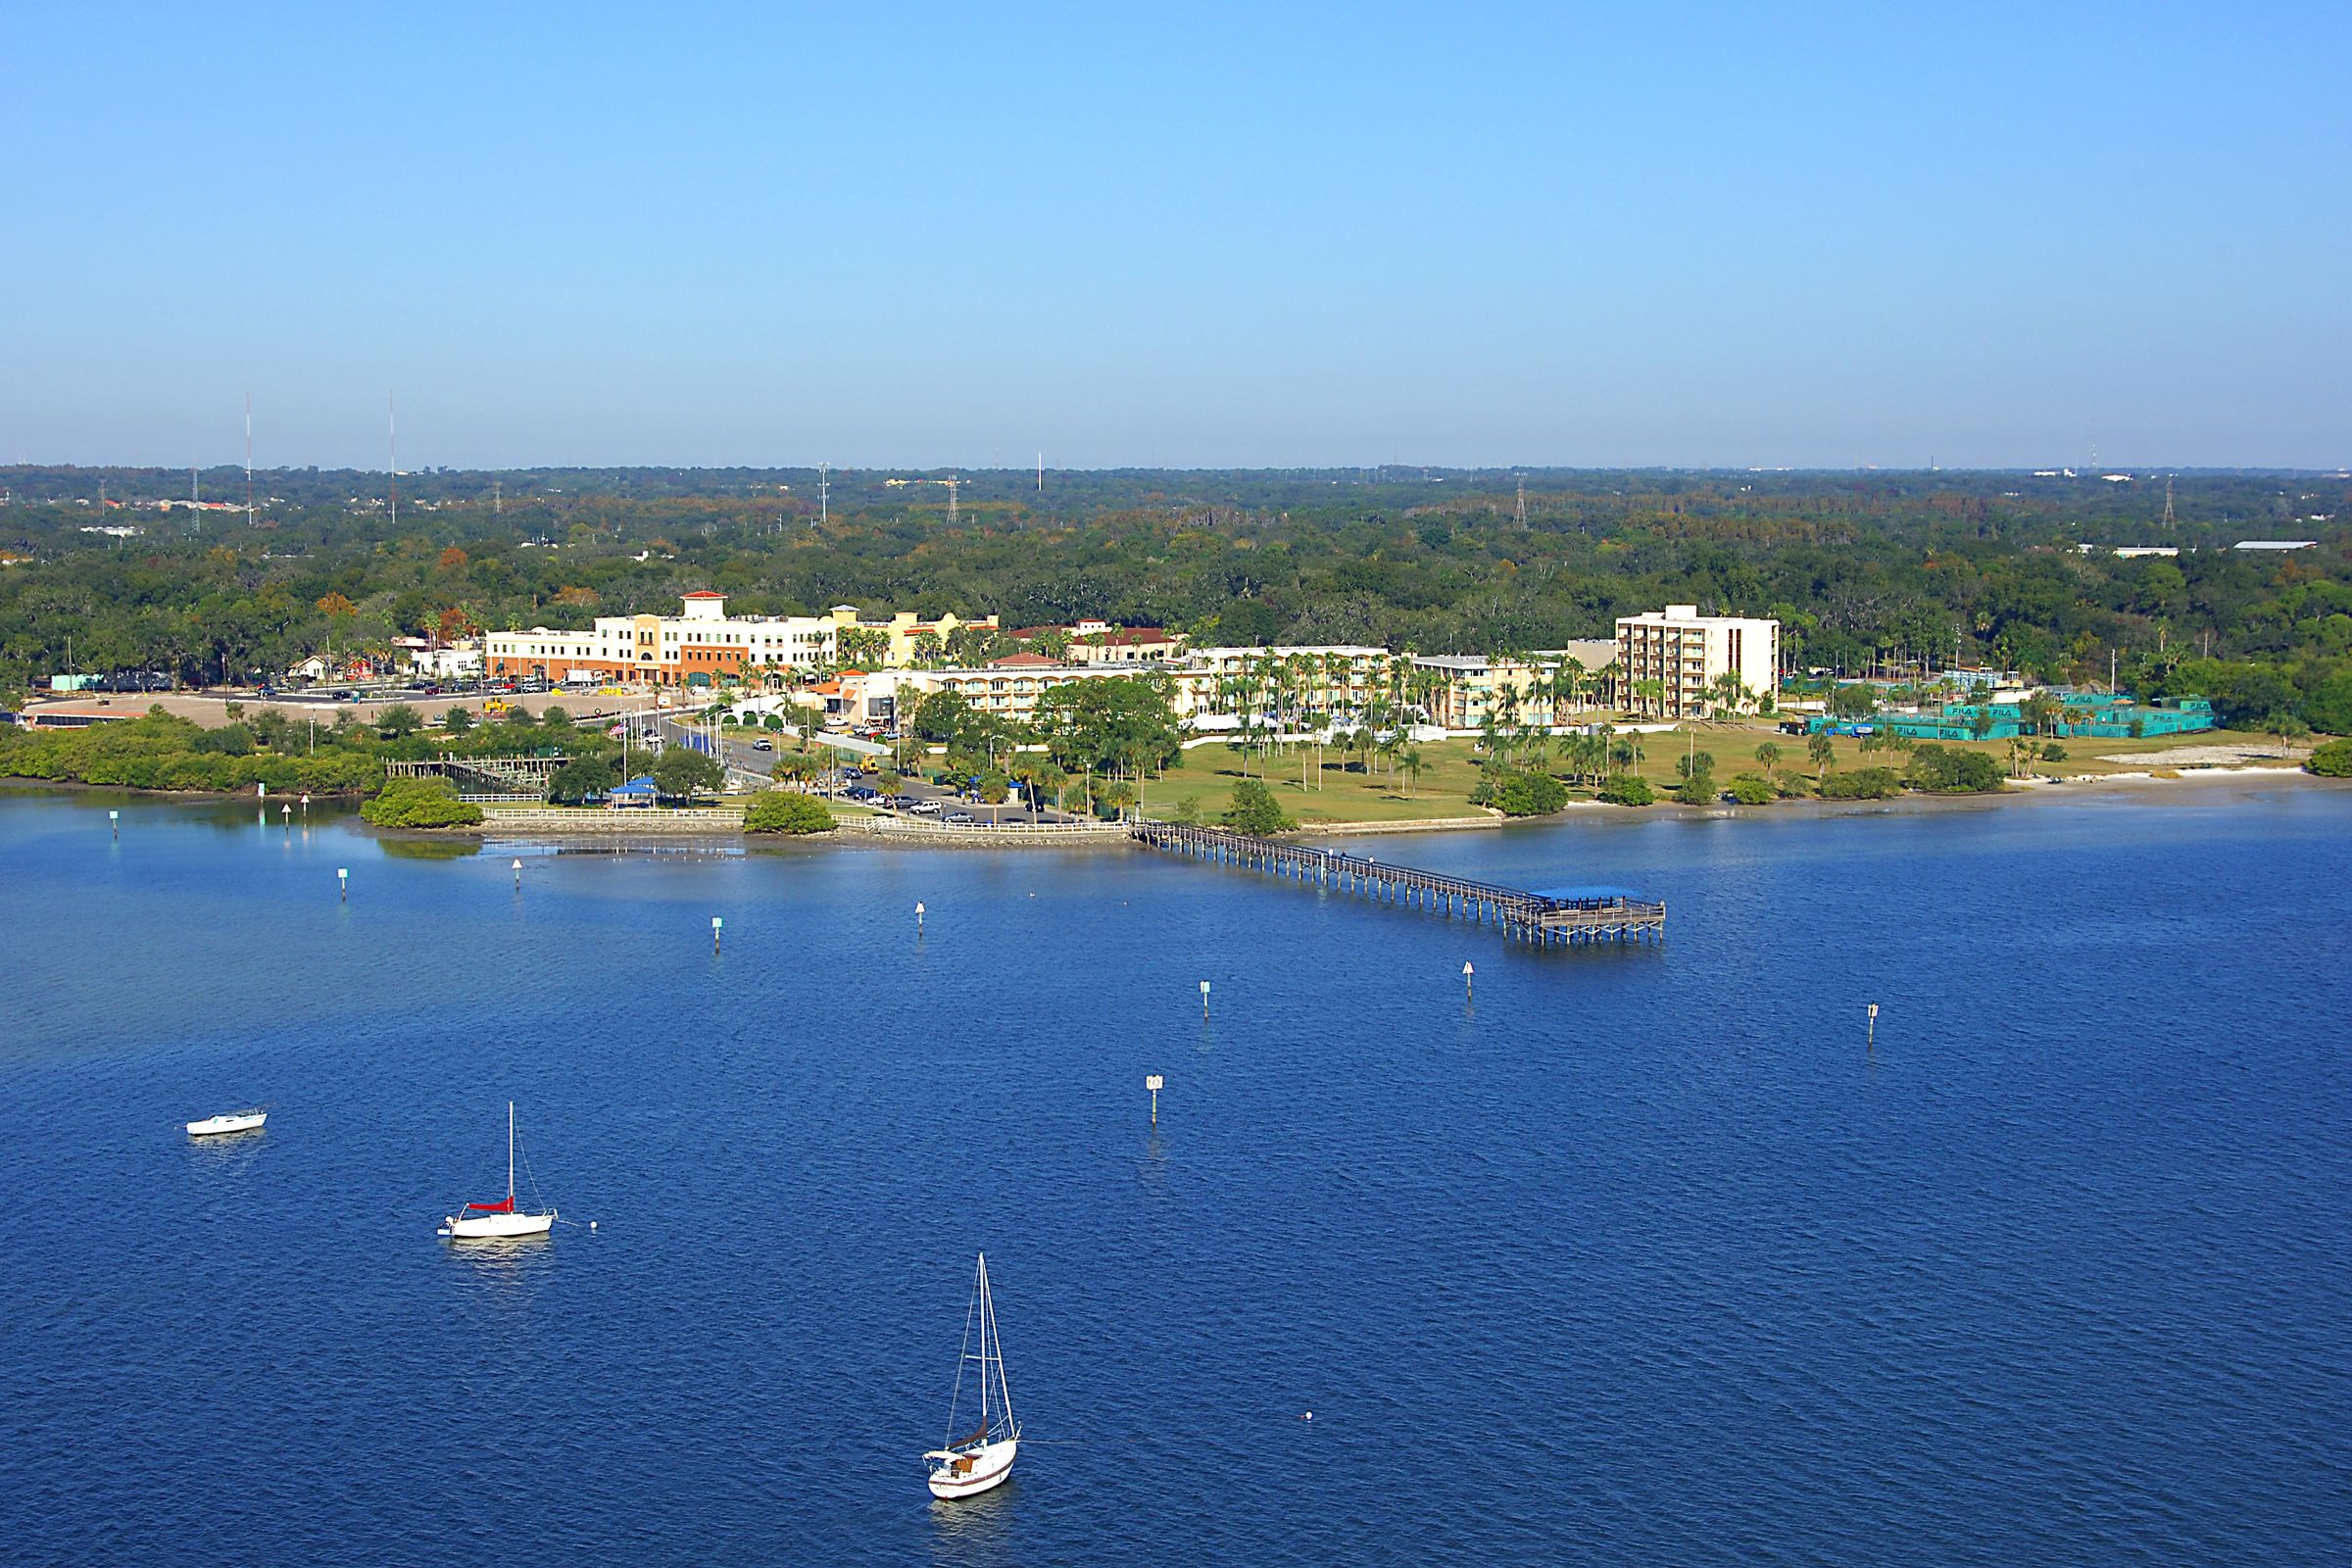 You can get information about Safety Harbor Spa and Resort